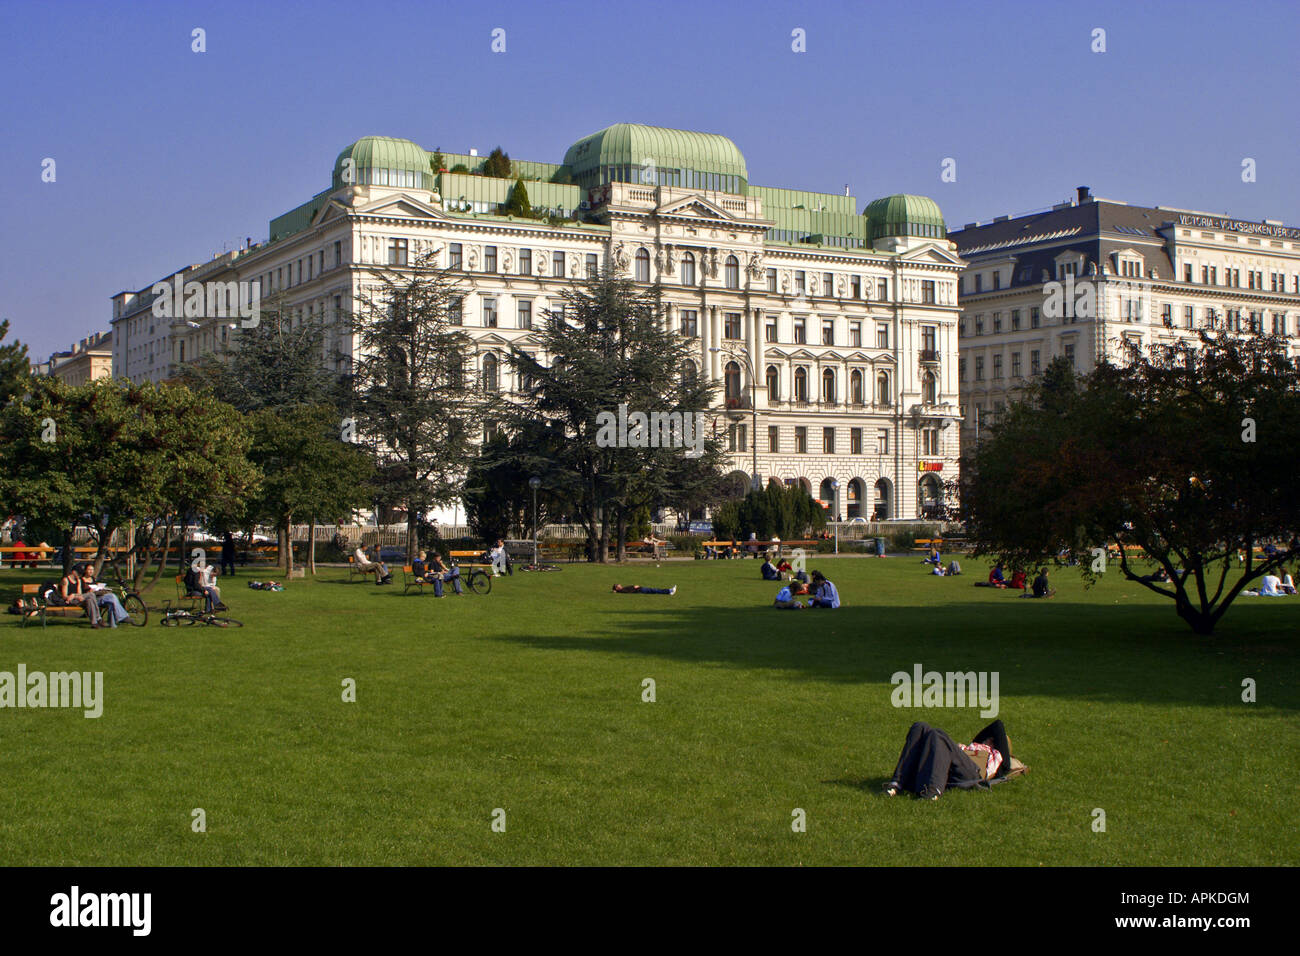 sunbathing people on the lawn of the Sigmund-Freud-Square, Austria, Vienna - Stock Image